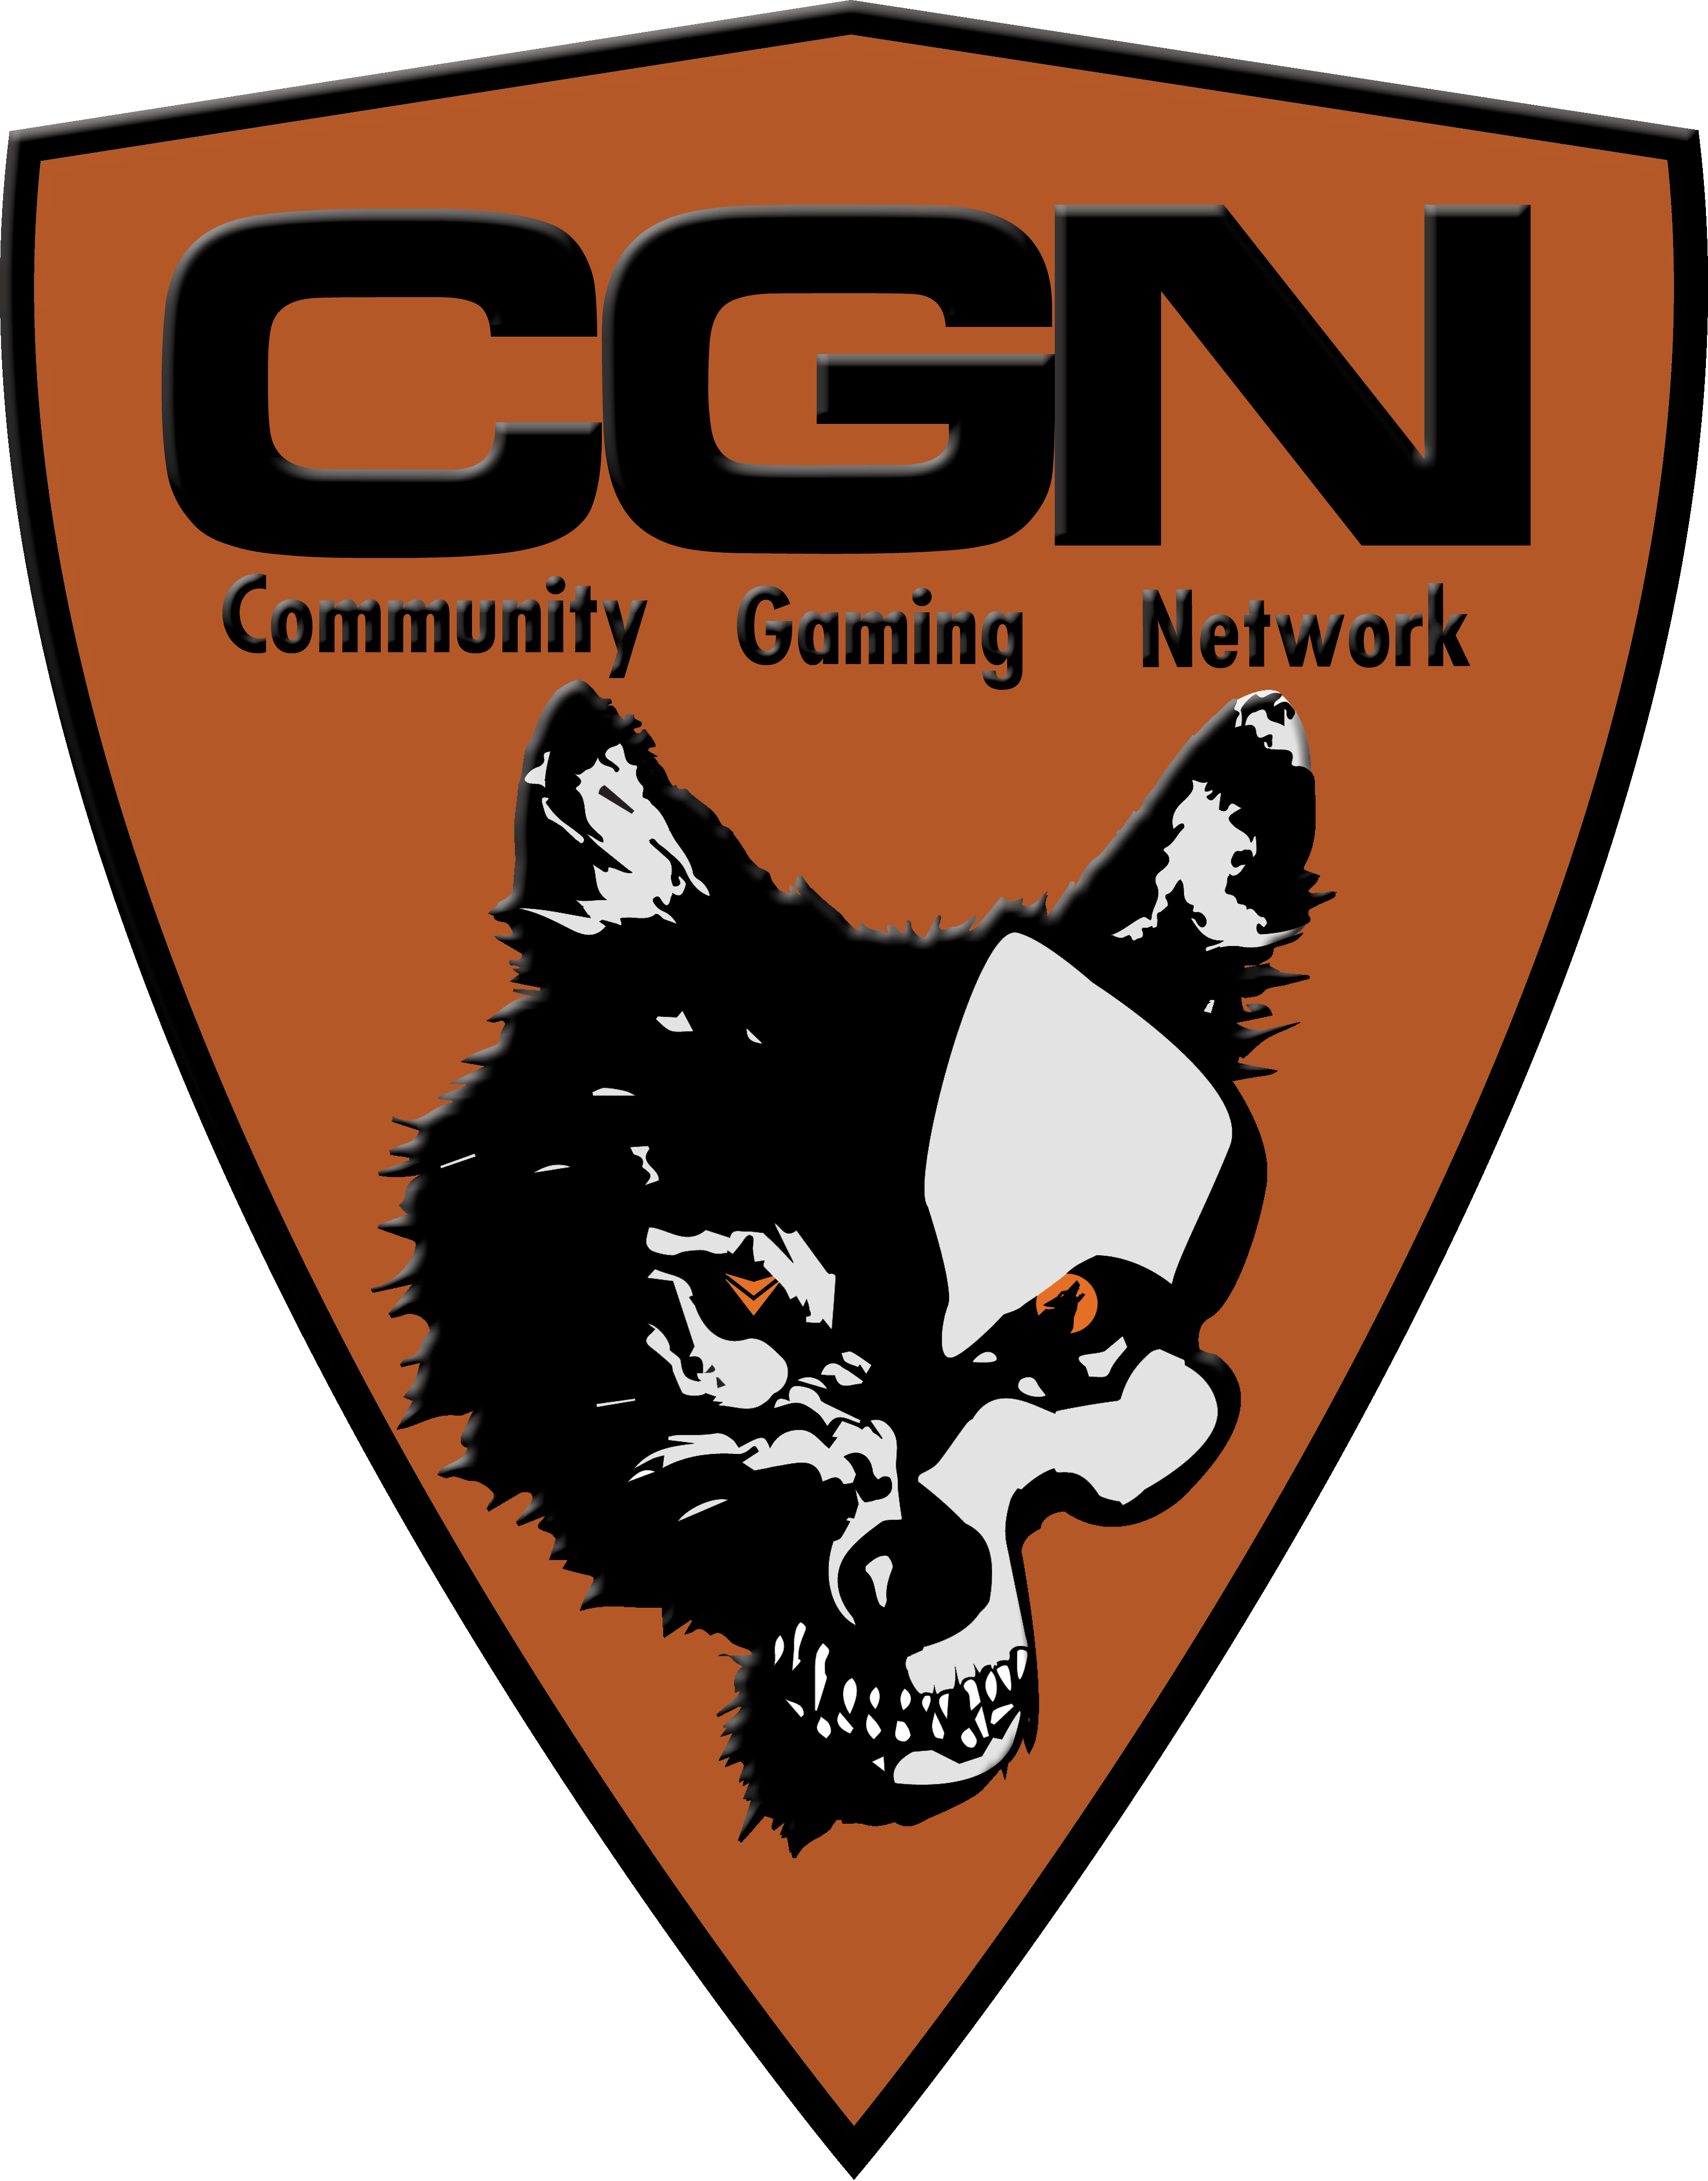 Community Gaming Network